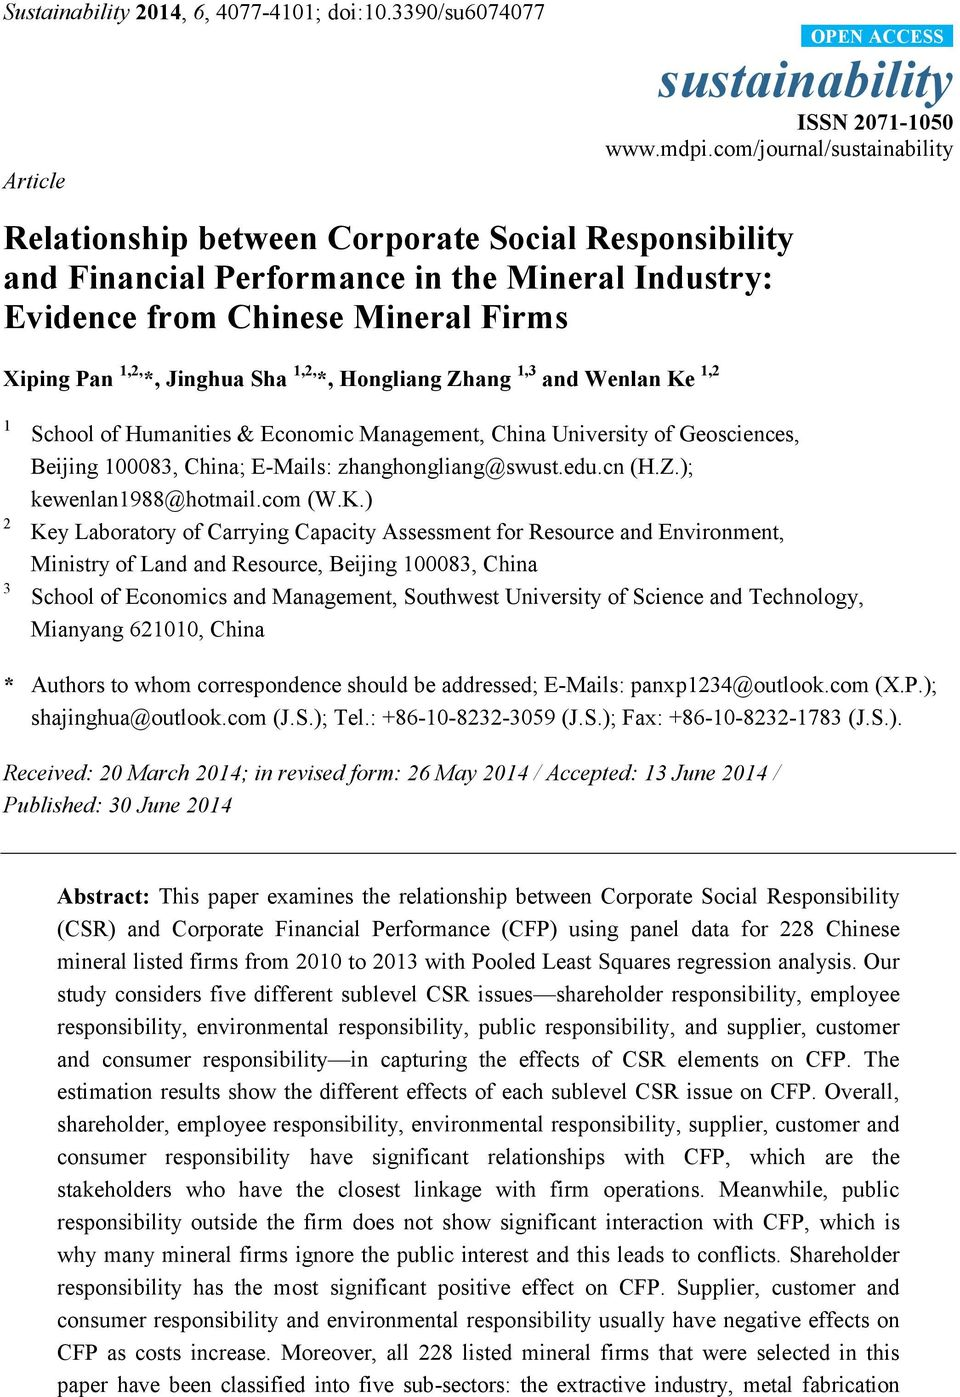 Corporate Social and Financial Performance: A Meta-Analysis